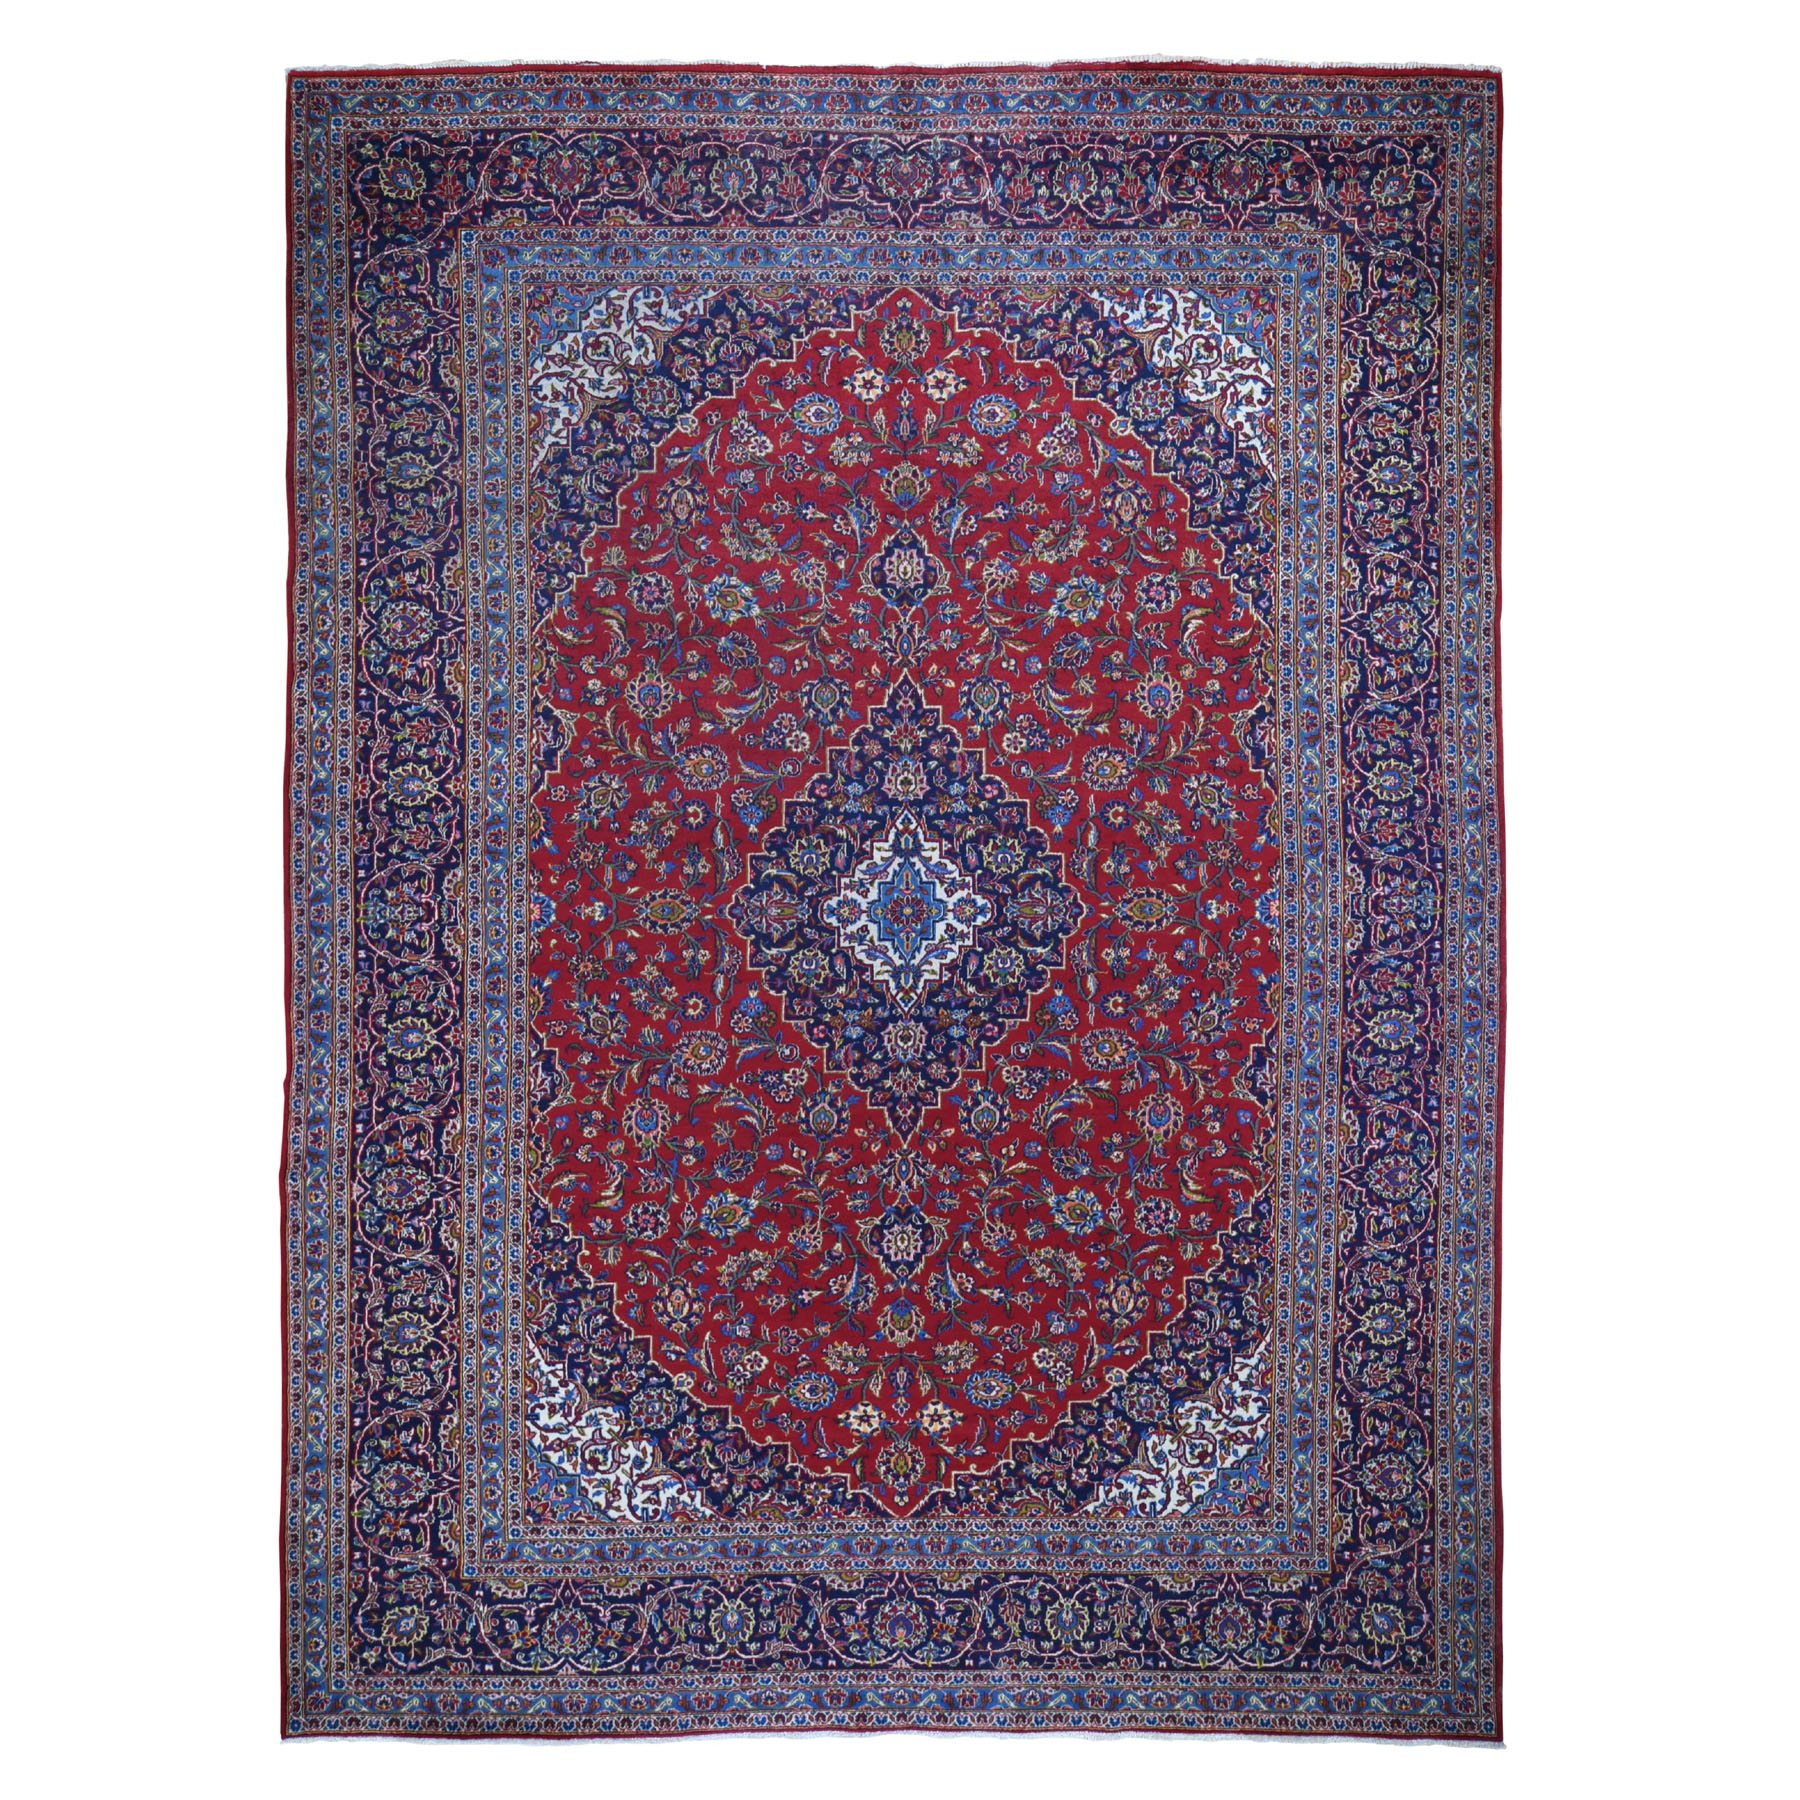 """9'10""""X13'4"""" Red Semi Antique Persian Kashan Full Pile Pure Wool Hand Knotted Oriental Rug moad8cdd"""